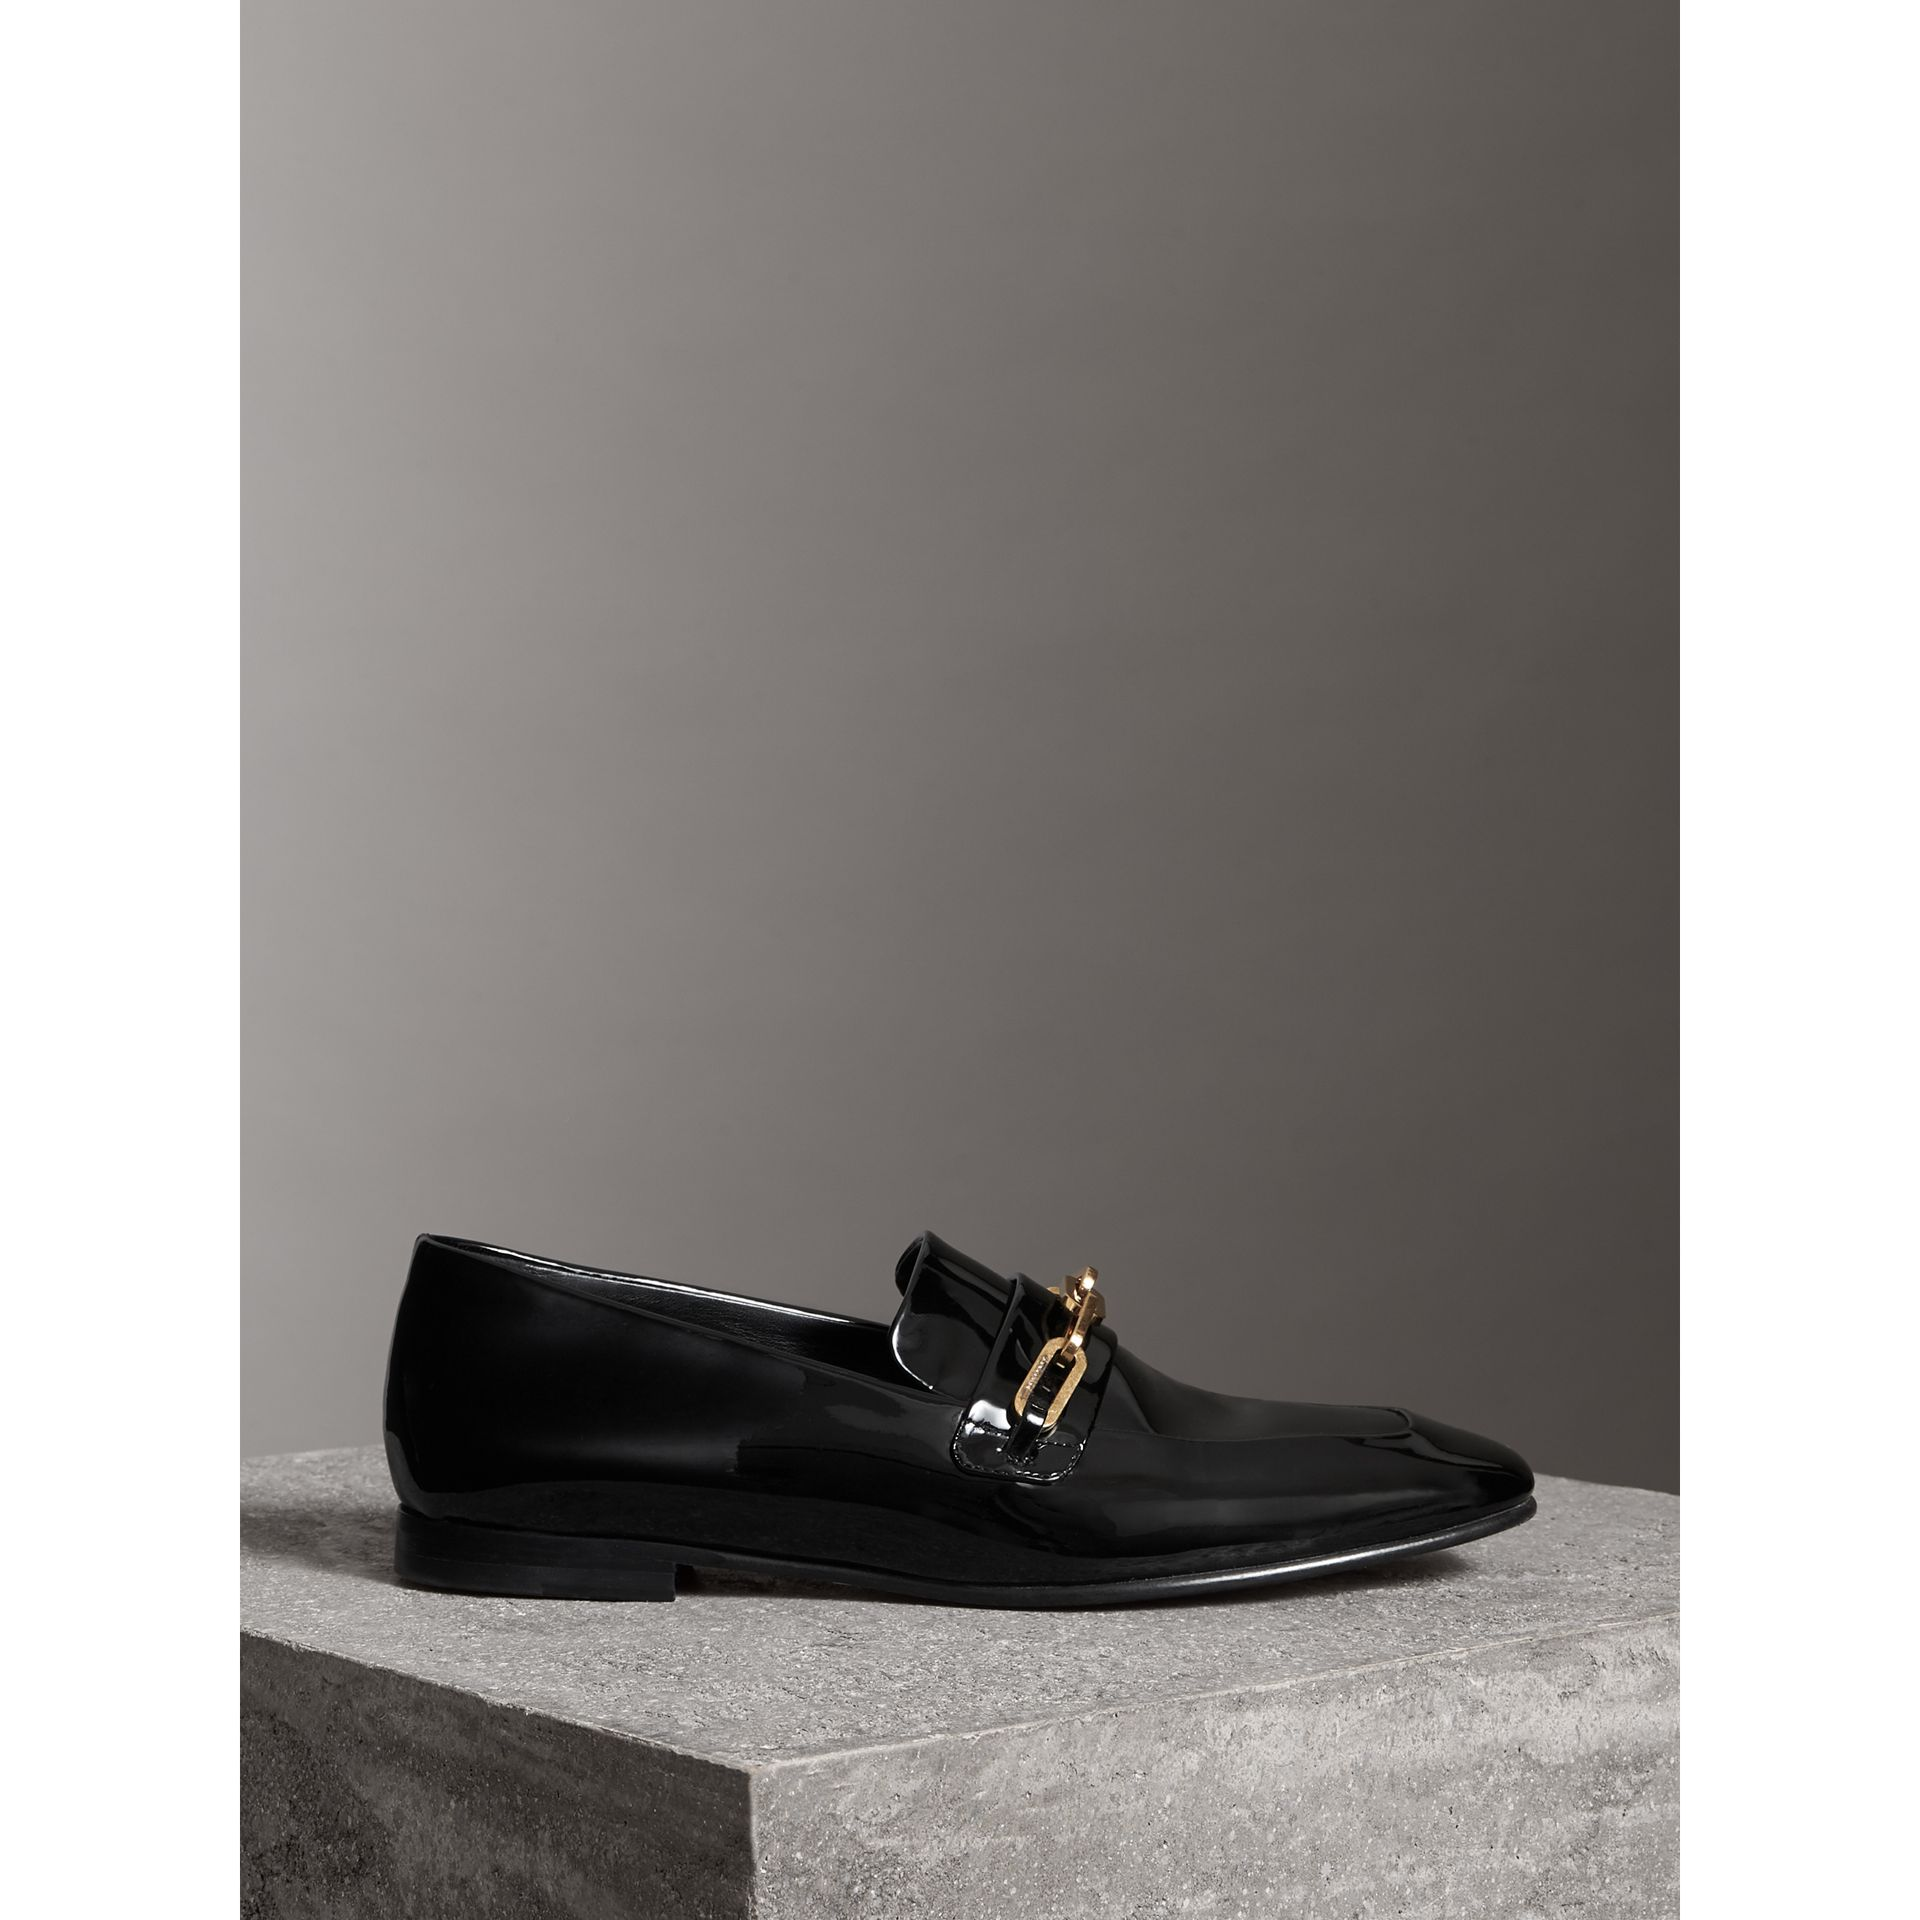 Link Detail Patent Leather Loafers in Black - Women | Burberry - gallery image 4